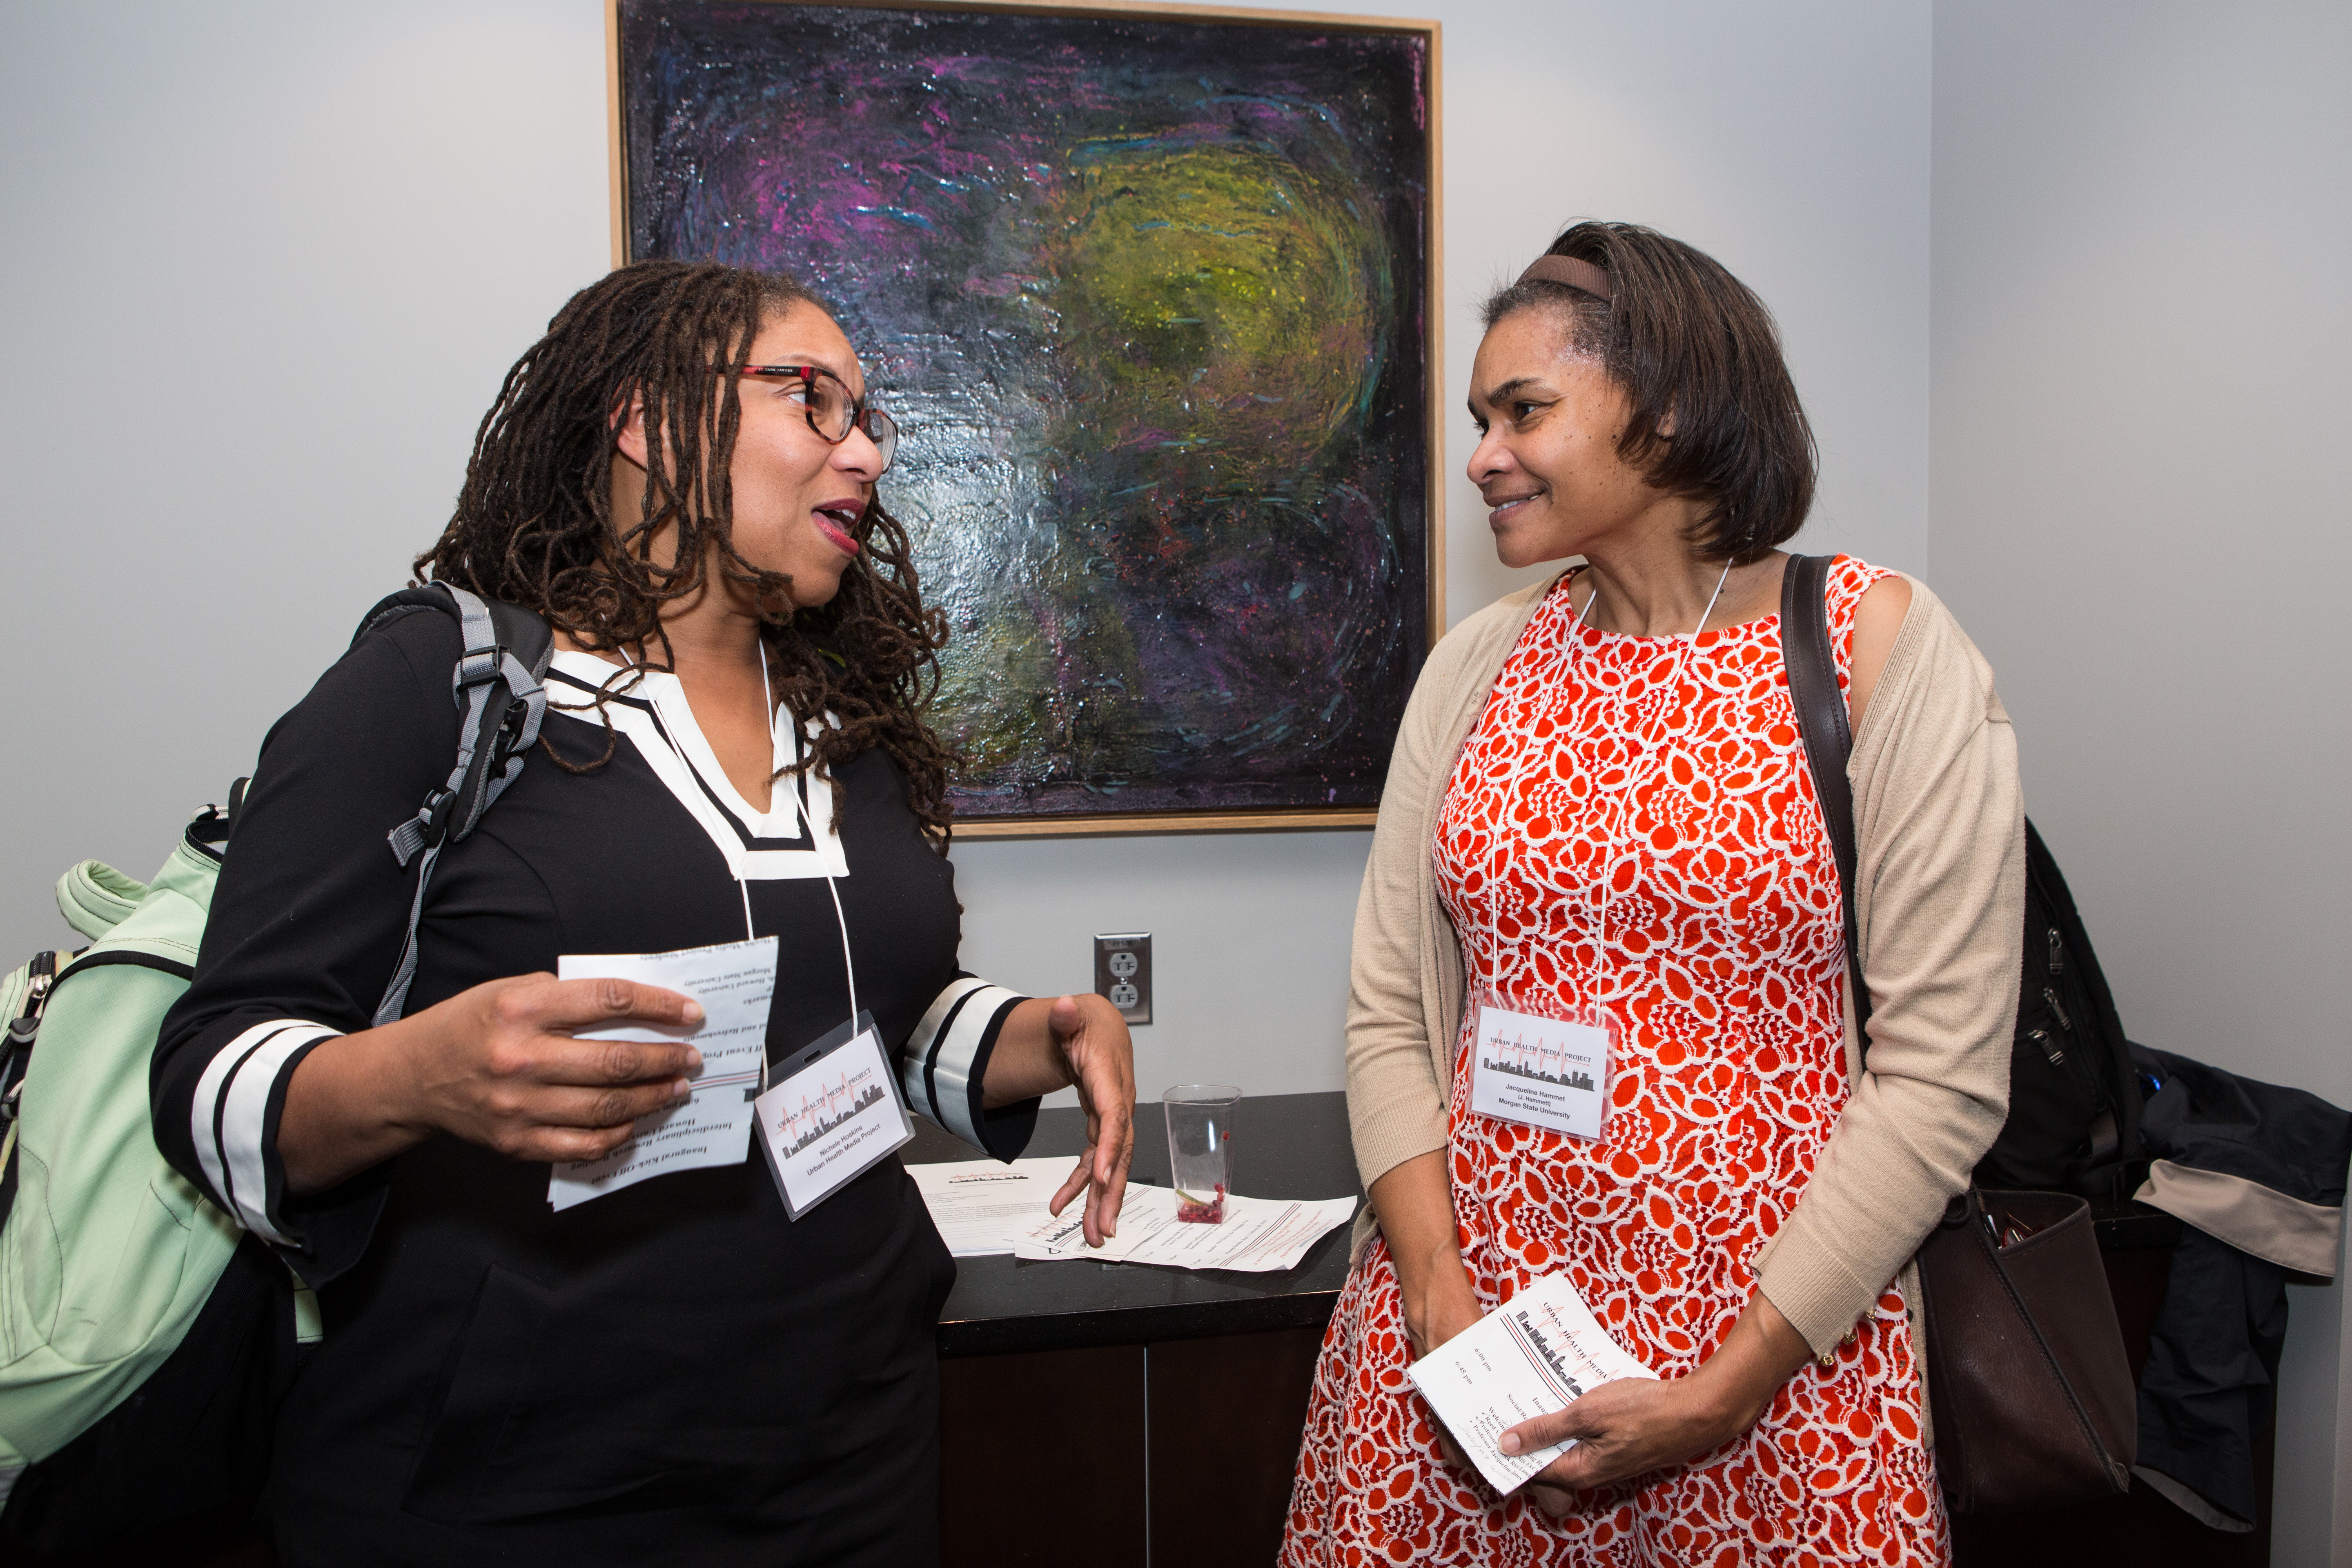 Nichele Hoskins, an instructor in UHMP2017, greets guests.